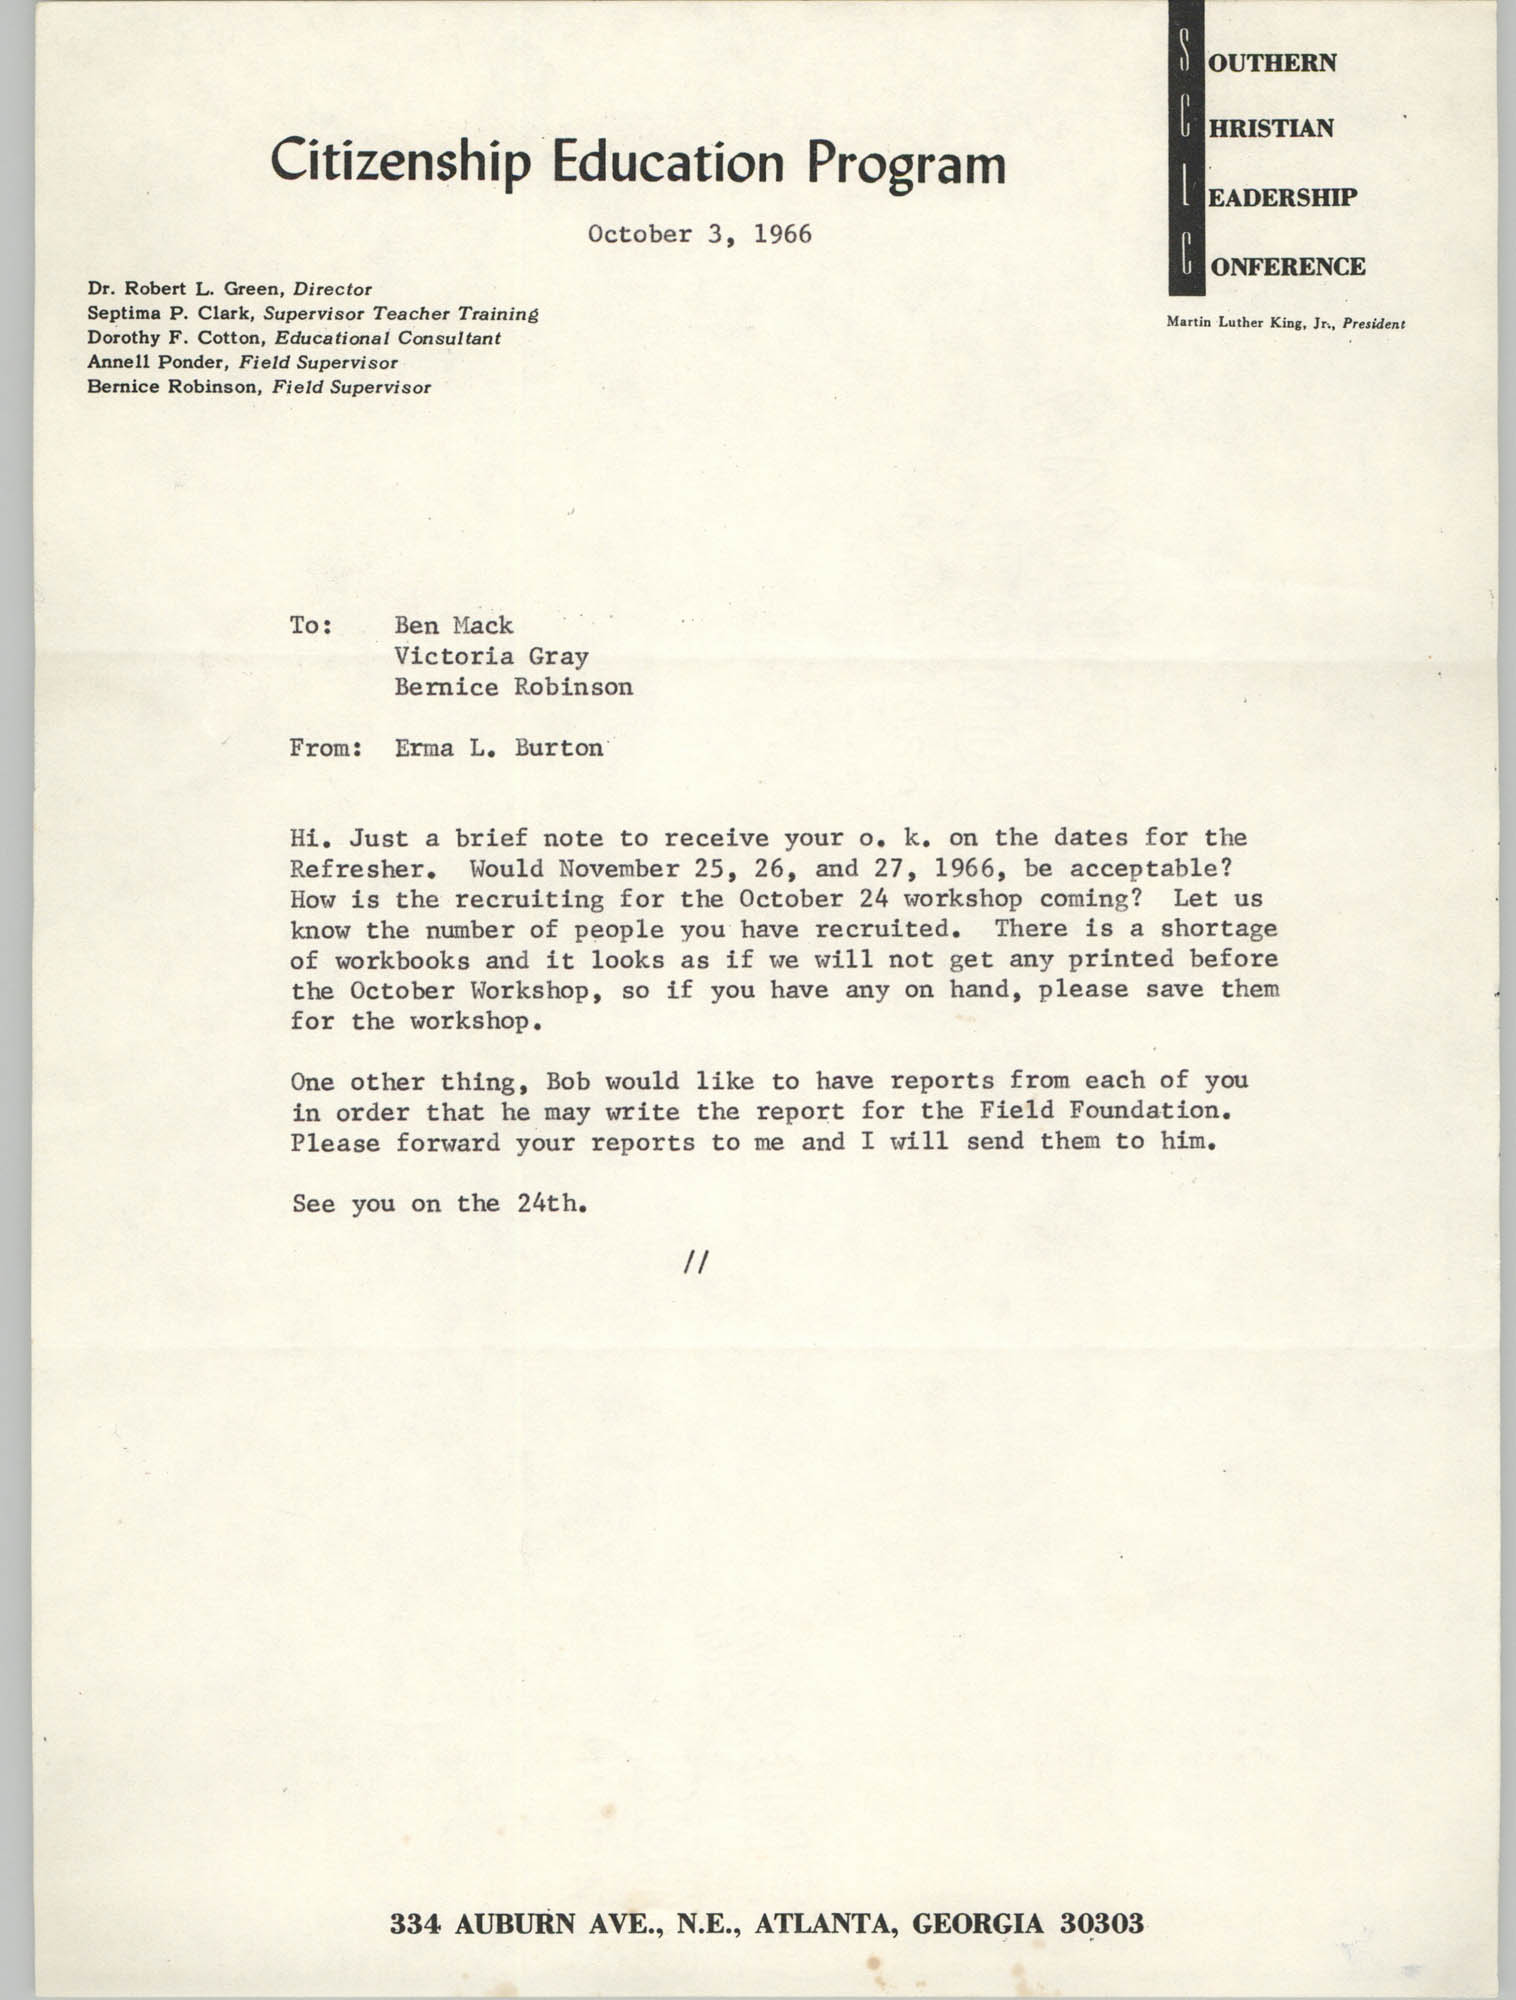 Letter from Erma L. Burton to Ben Mack, Victoria Gray, and Bernice Robinson, October 3, 1966